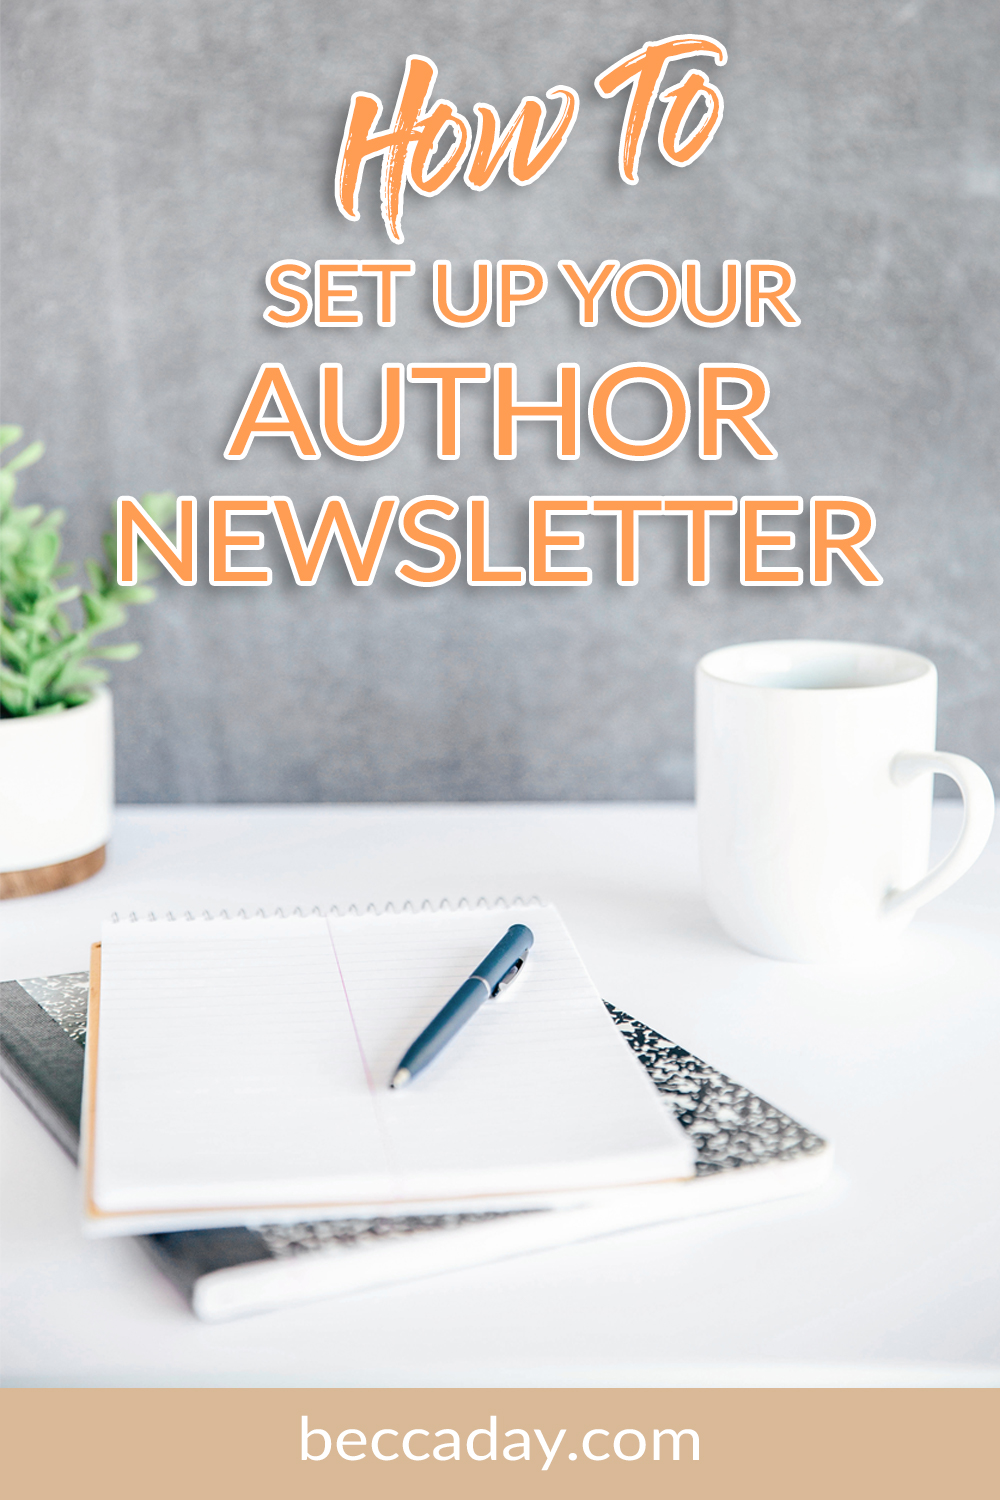 How to set up your author newsletter